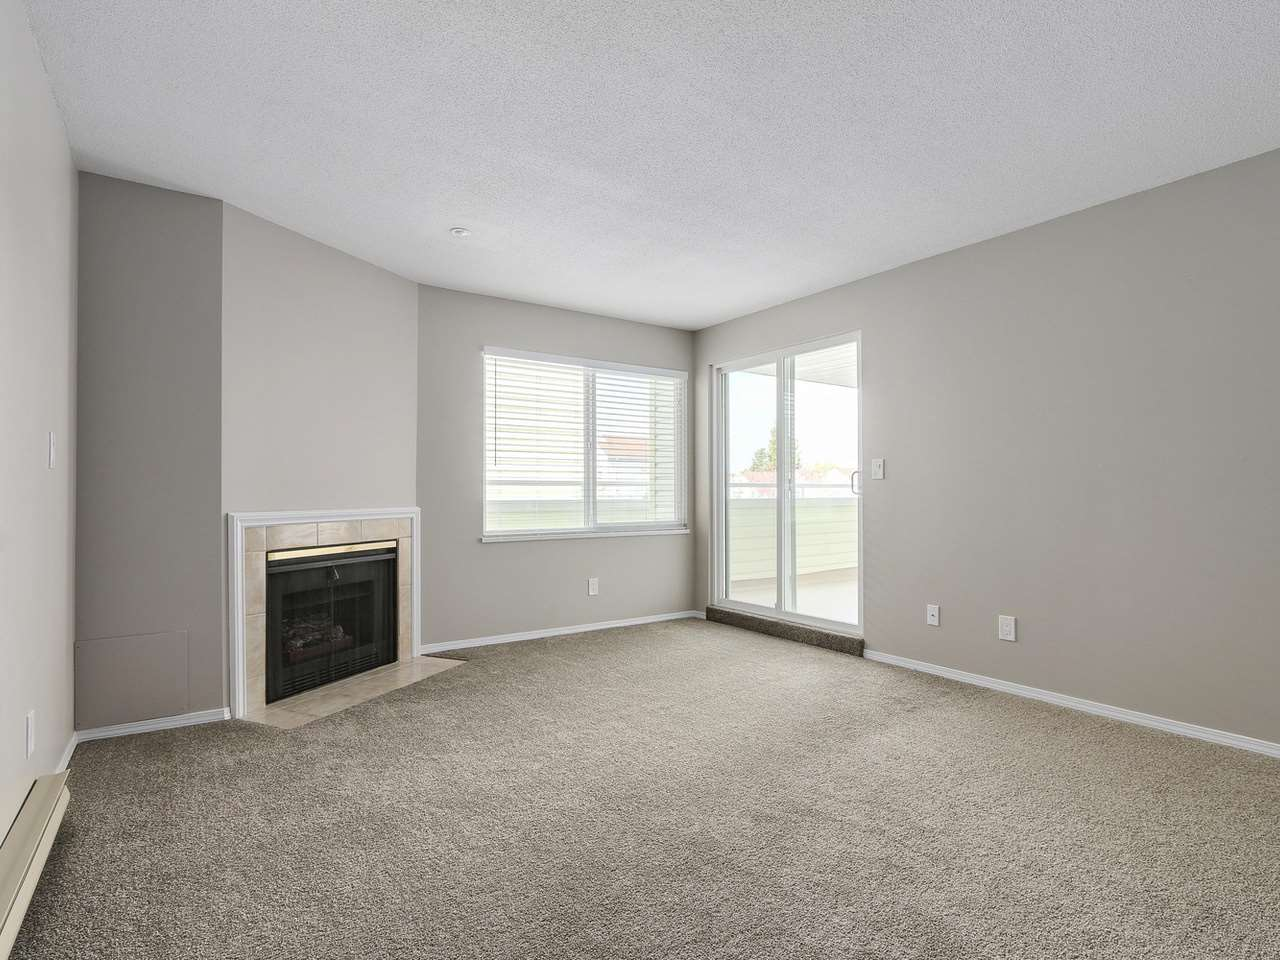 "Photo 4: 16 5661 LADNER TRUNK Road in Delta: Hawthorne Condo for sale in ""OAK GLEN TERRACE"" (Ladner)  : MLS(r) # R2157944"